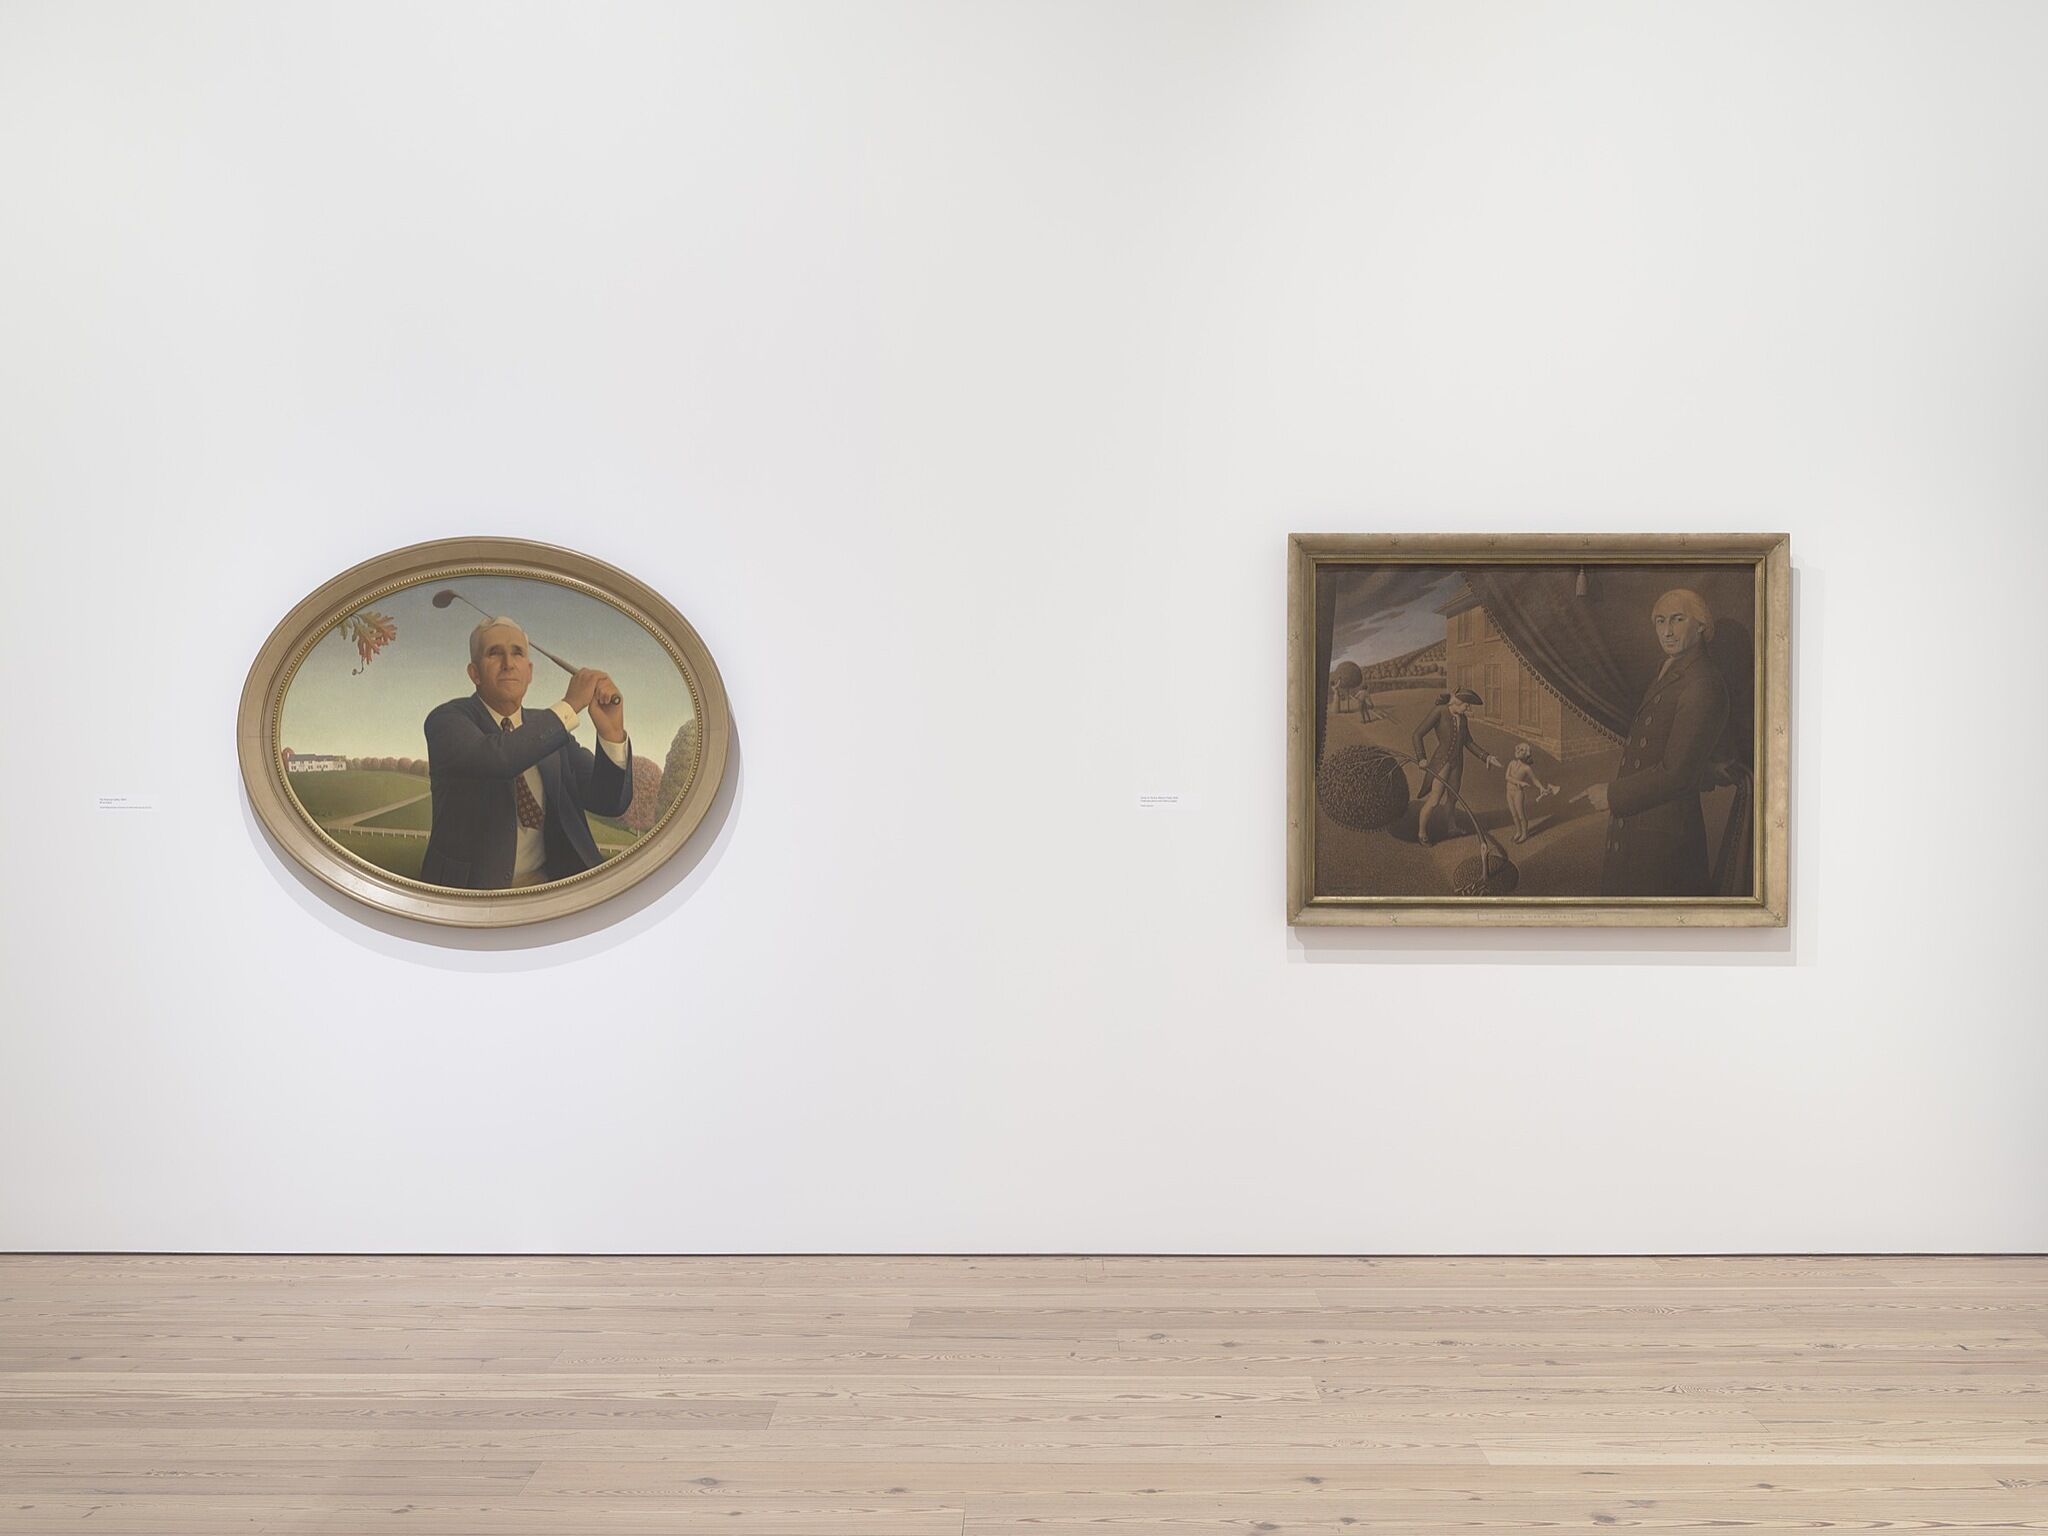 Two paintings on a white wall.